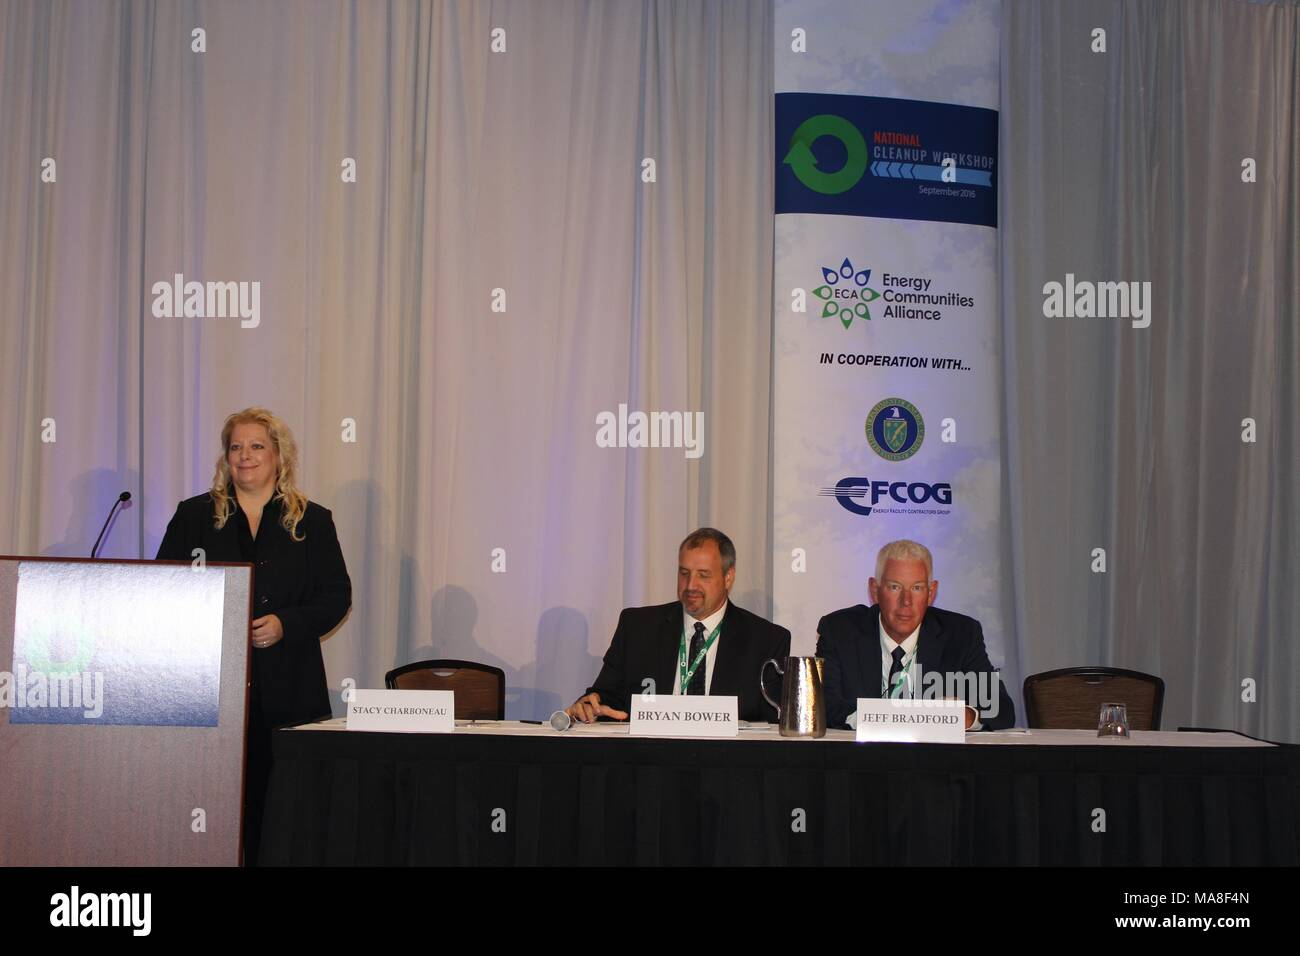 Stacy Charboneau standing behind a podium, with panel members Bryan Bower, and Jeff Bradford, seated at the table next to her, at the United States Department of Energy (DOE) 2016 National Cleanup Workshop, held in cooperation with the Energy Communities Alliance (ECA) and FCOG, September 14-15, at the Hilton Alexandria Mark Center in Alexandria, Virginia, Image courtesy US Department of Energy, September, 2016. () - Stock Image